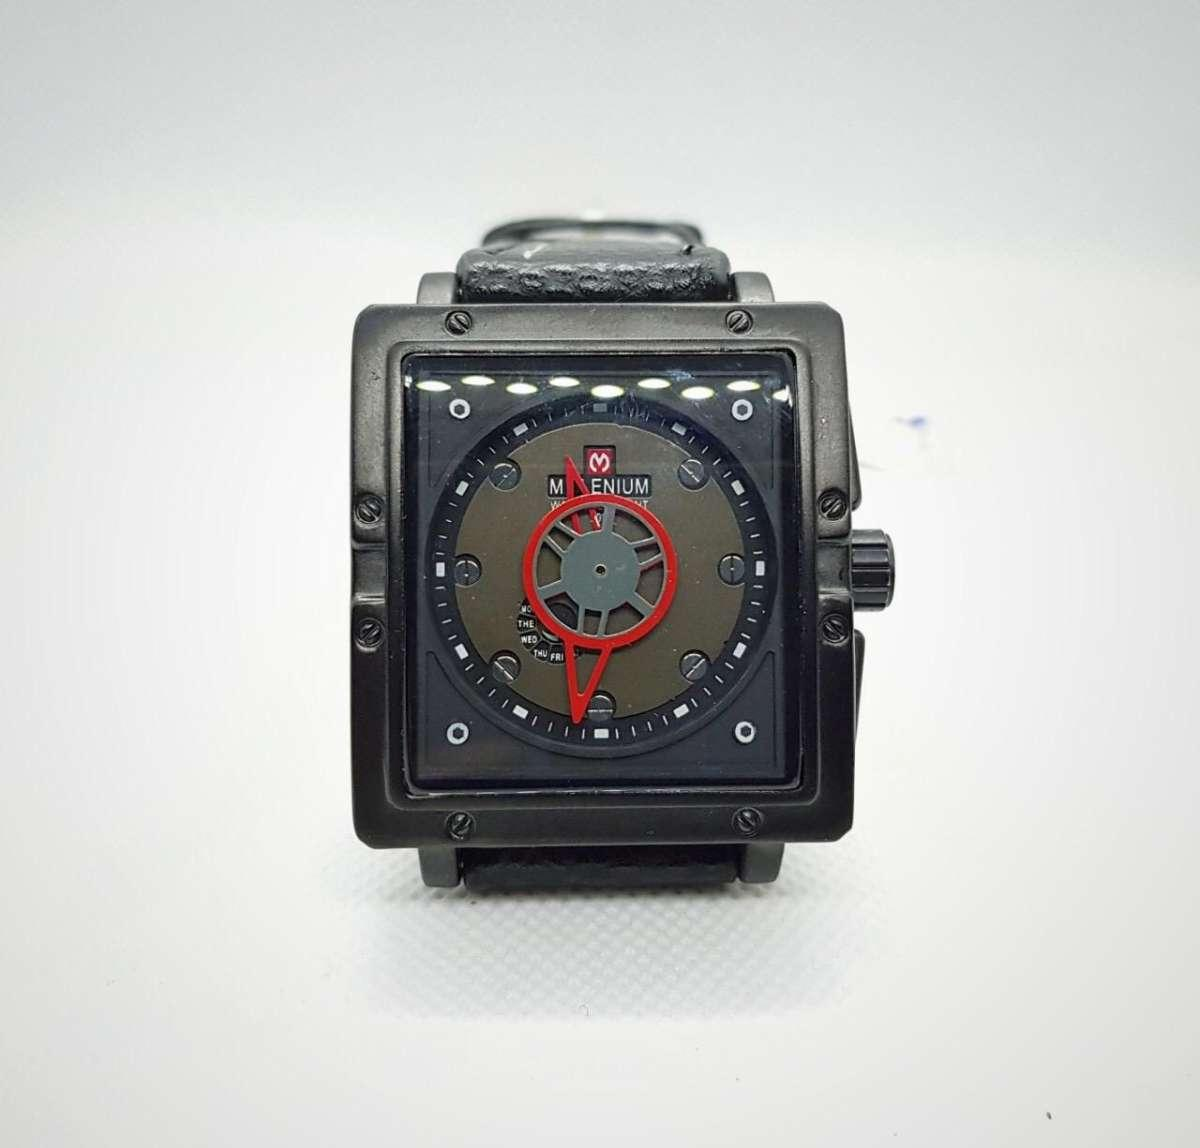 469f481a7 Men s Watches in Nepal at Best Price. 29 items found in Men. Millenium  Date Day Function Analog Watch For Men- Black Red